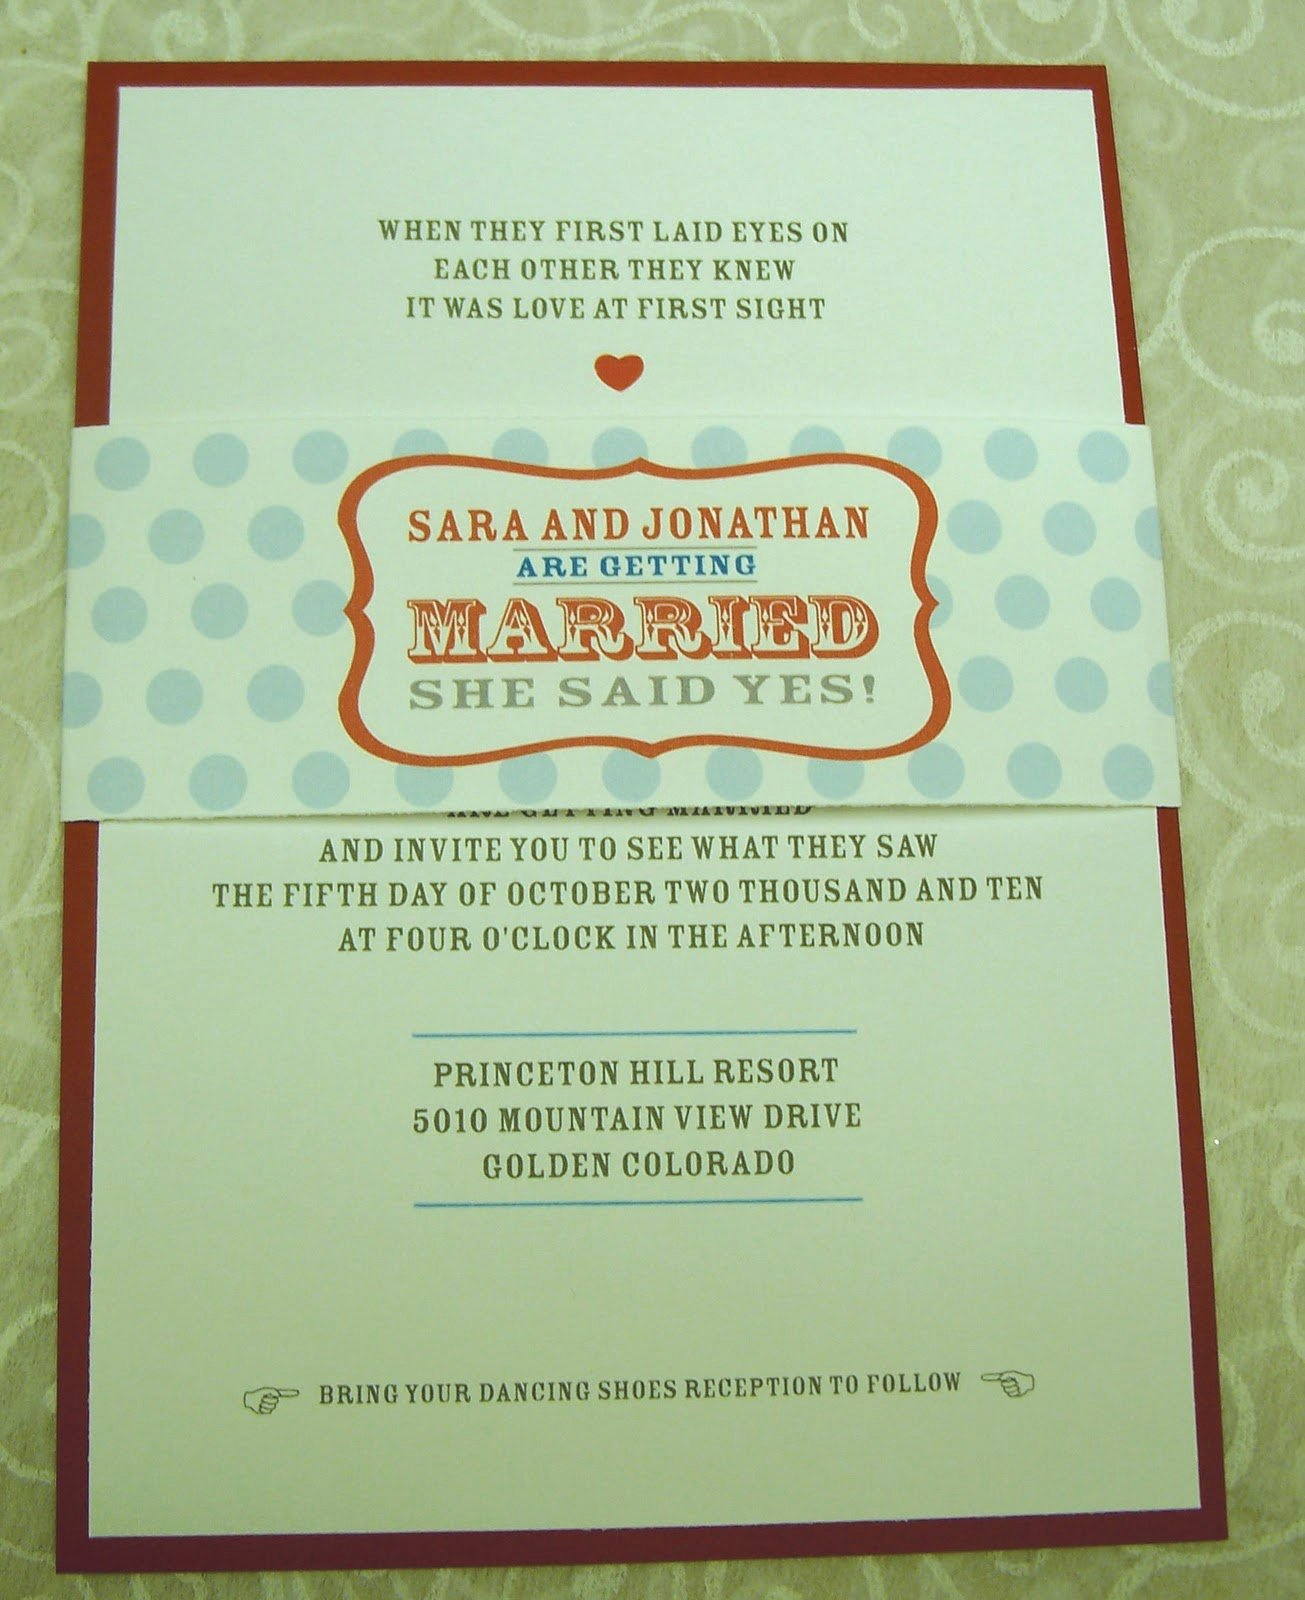 Wedding Invitation Word Template Awesome Ivy Belle Weddings Diy Wedding Projects and Ideas for